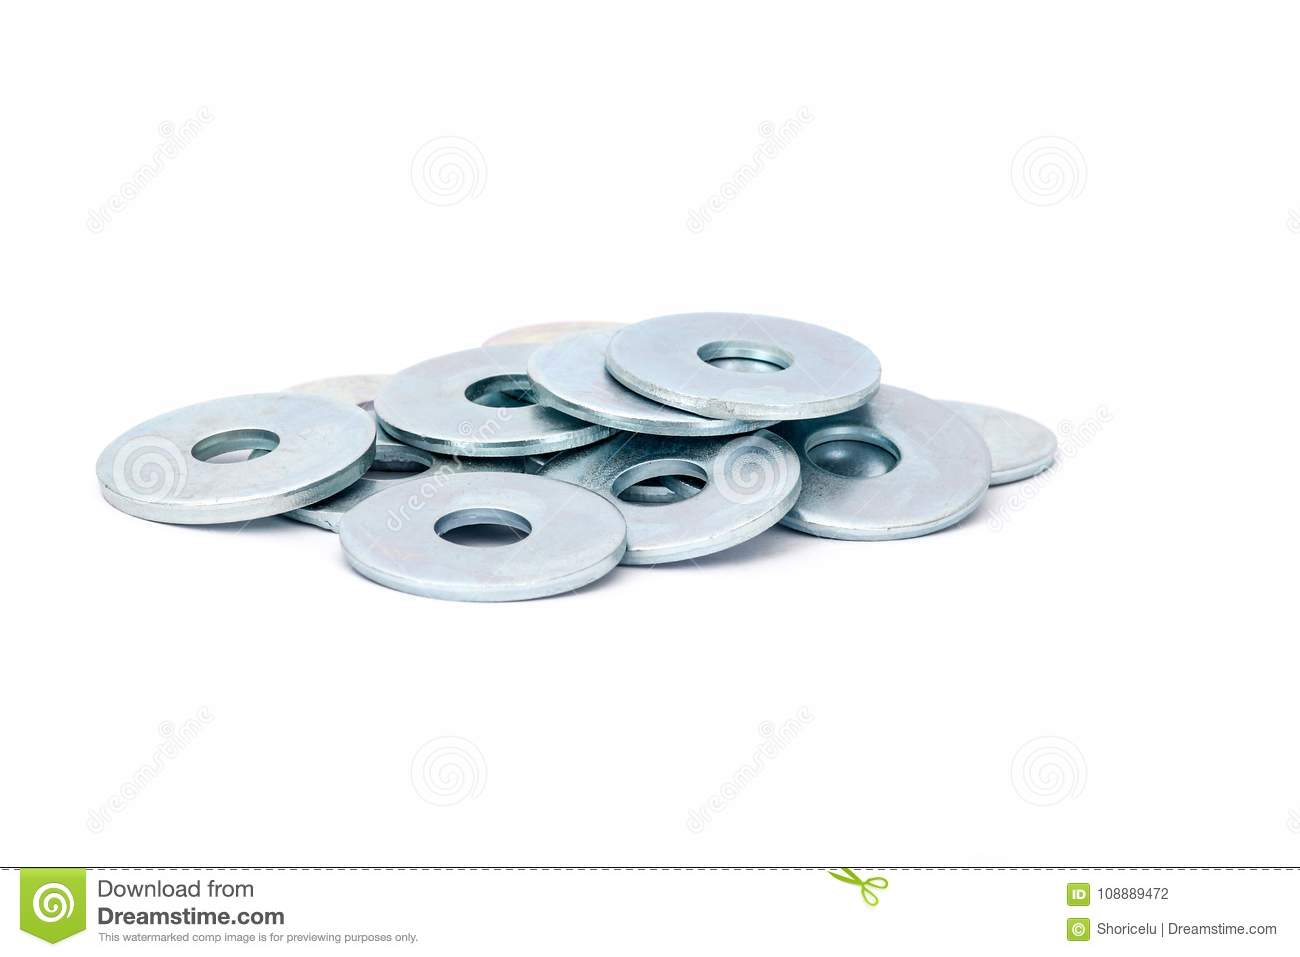 Metallic Stainless Steel Fender Washers Stock Photo Image Of